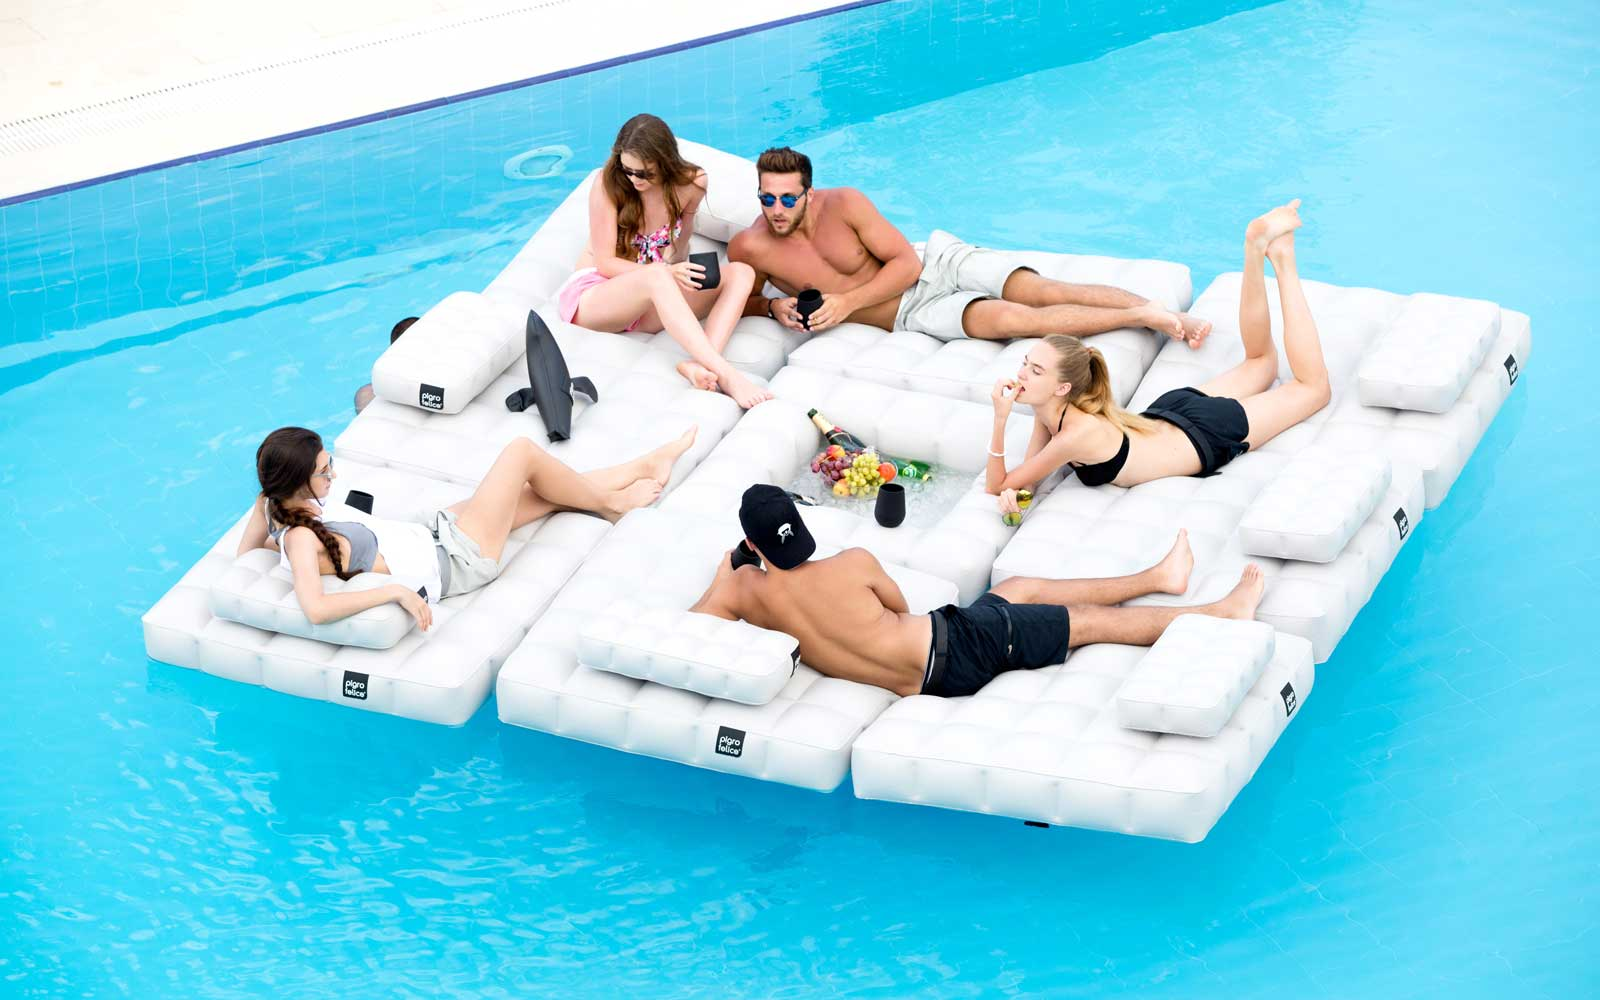 This $450 Air Bed Is the Fanciest Pool Float Ever